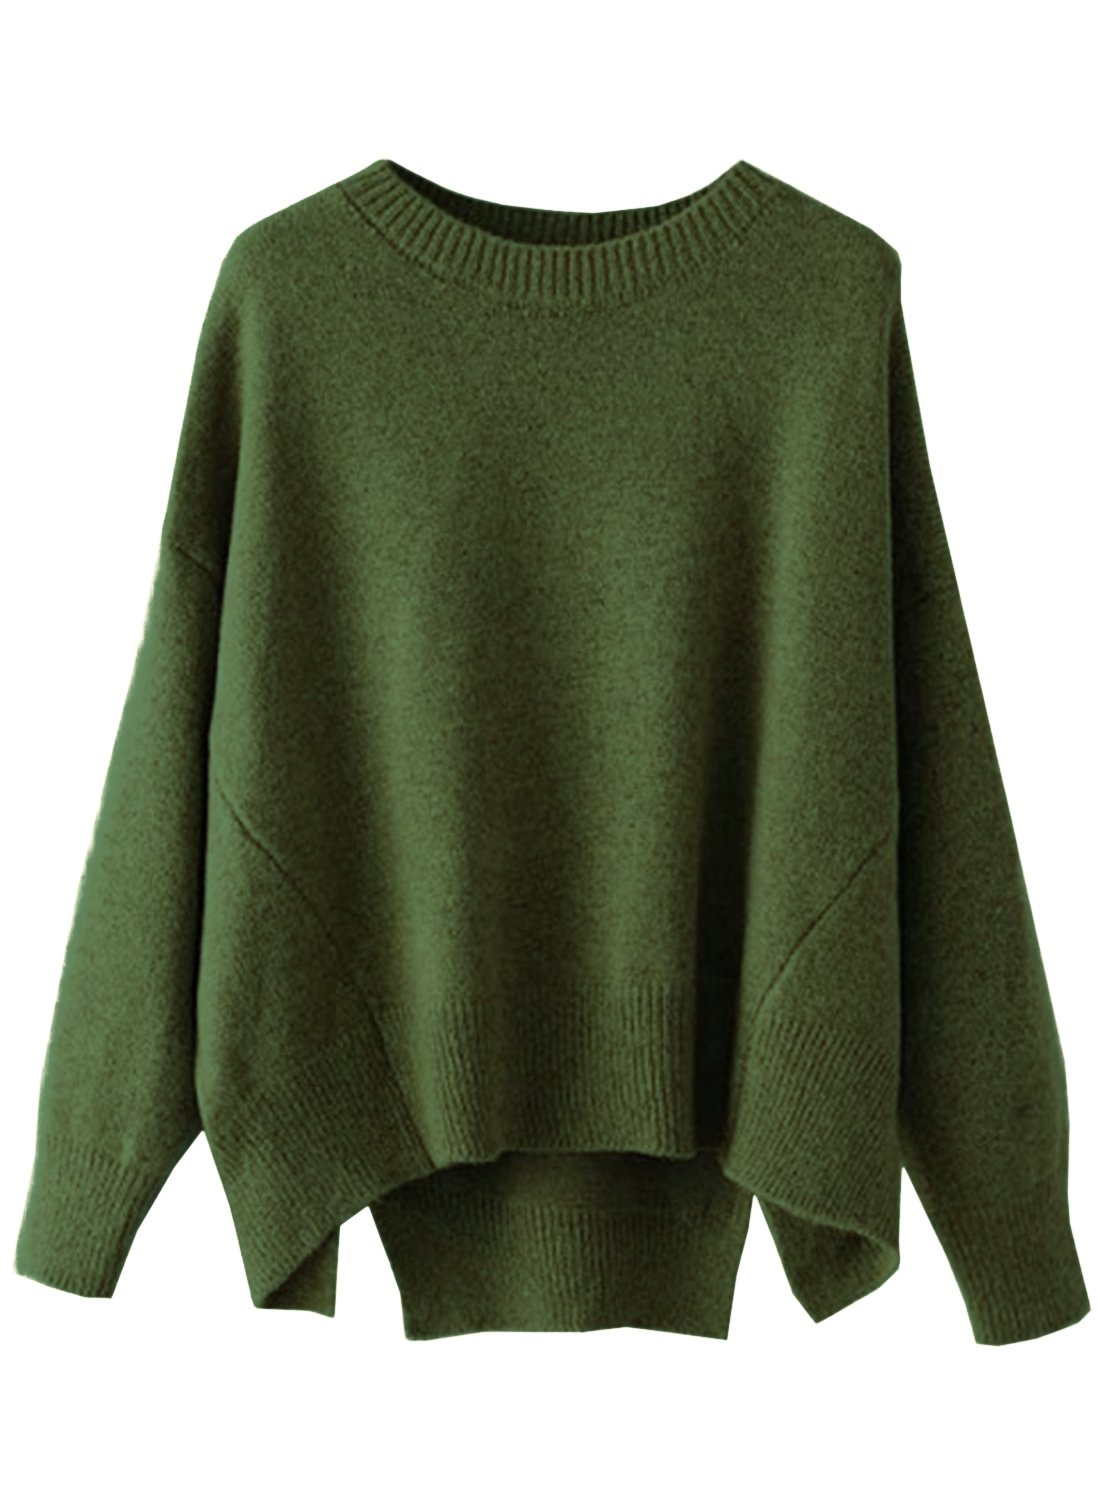 Futurino Women's Crew Neck Solid Long Drop Sleeves Loose Knit Pullover Sweaters (One Size, Olive)